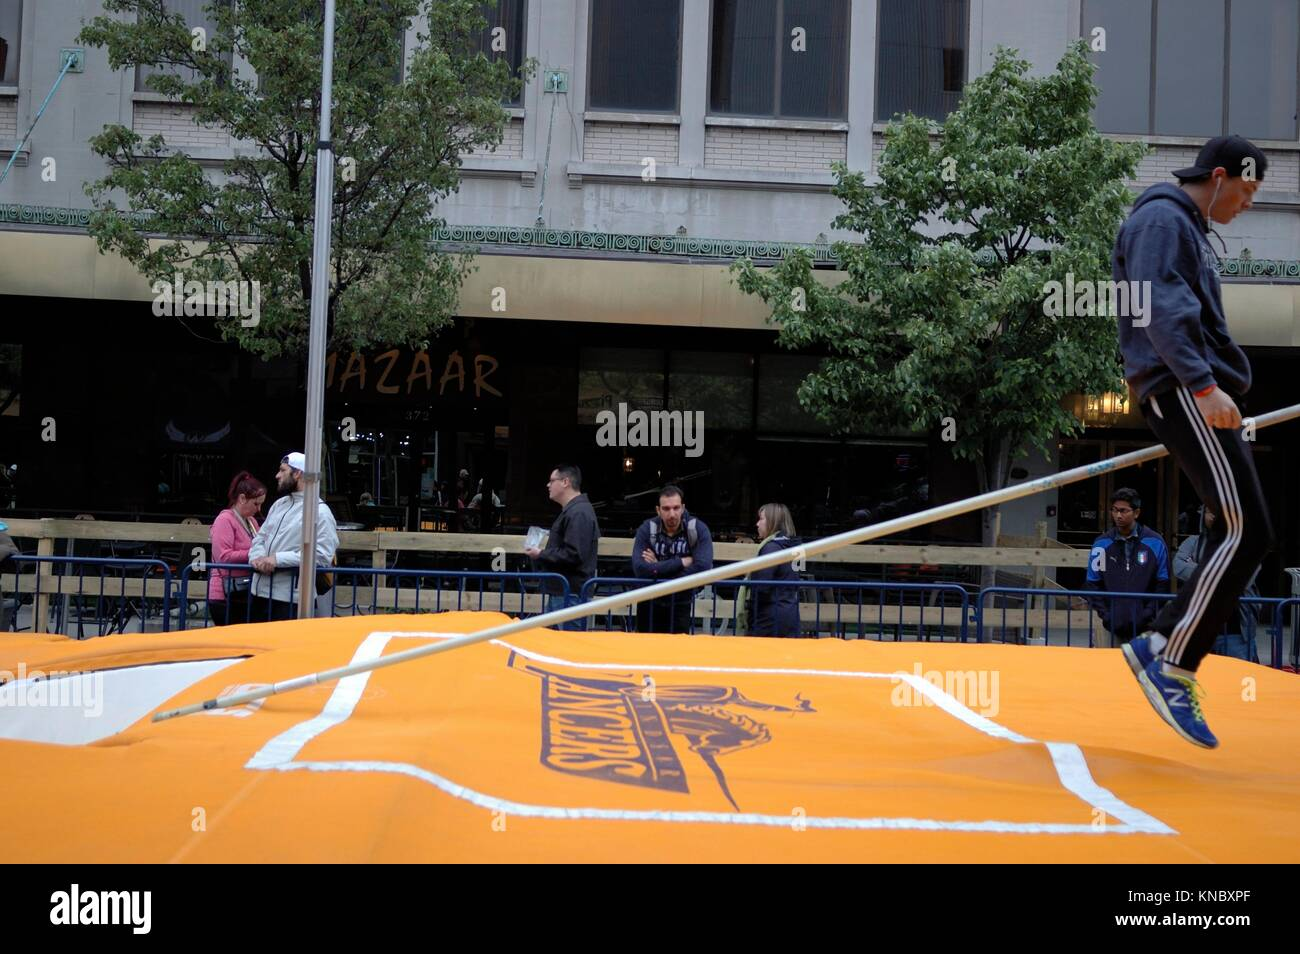 A male pole vault university athlete straddles a pole after his warm up attempt during a downtown exhibition sponsored - Stock Image